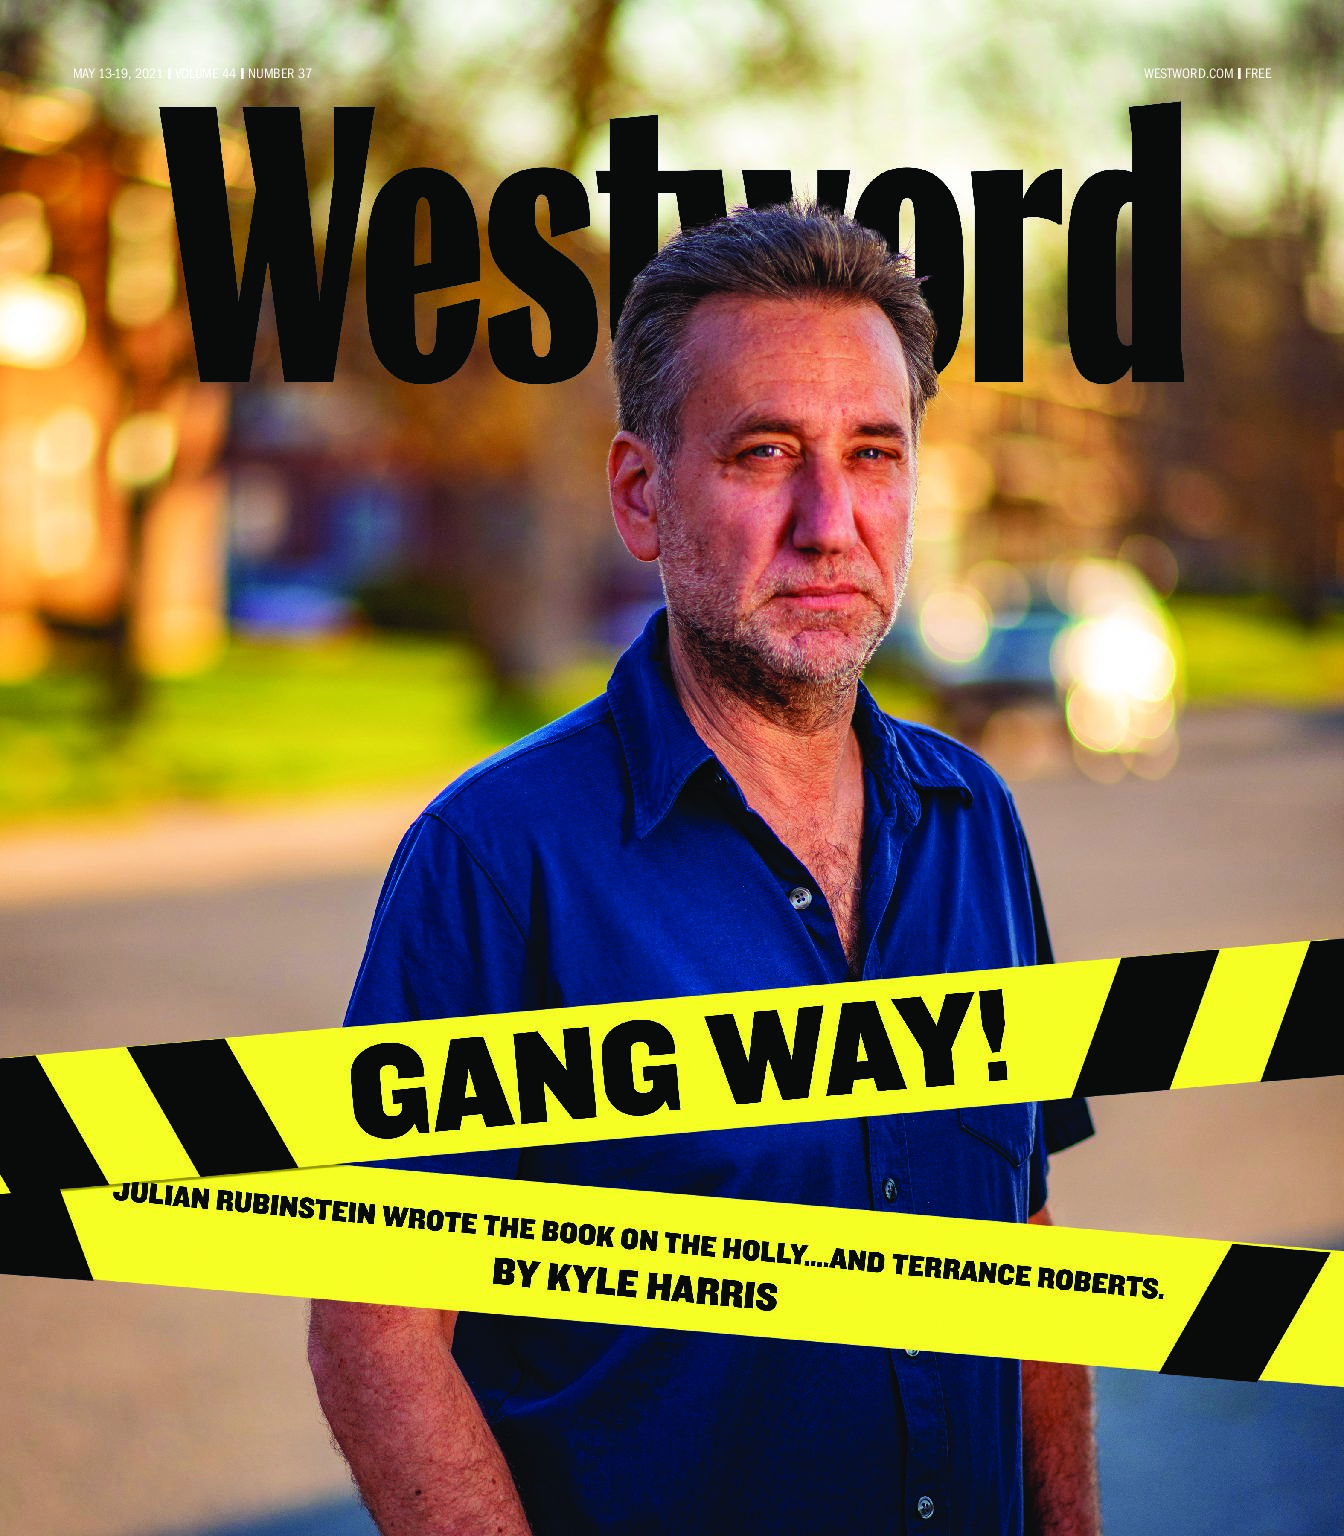 The Holly on the cover of Westword